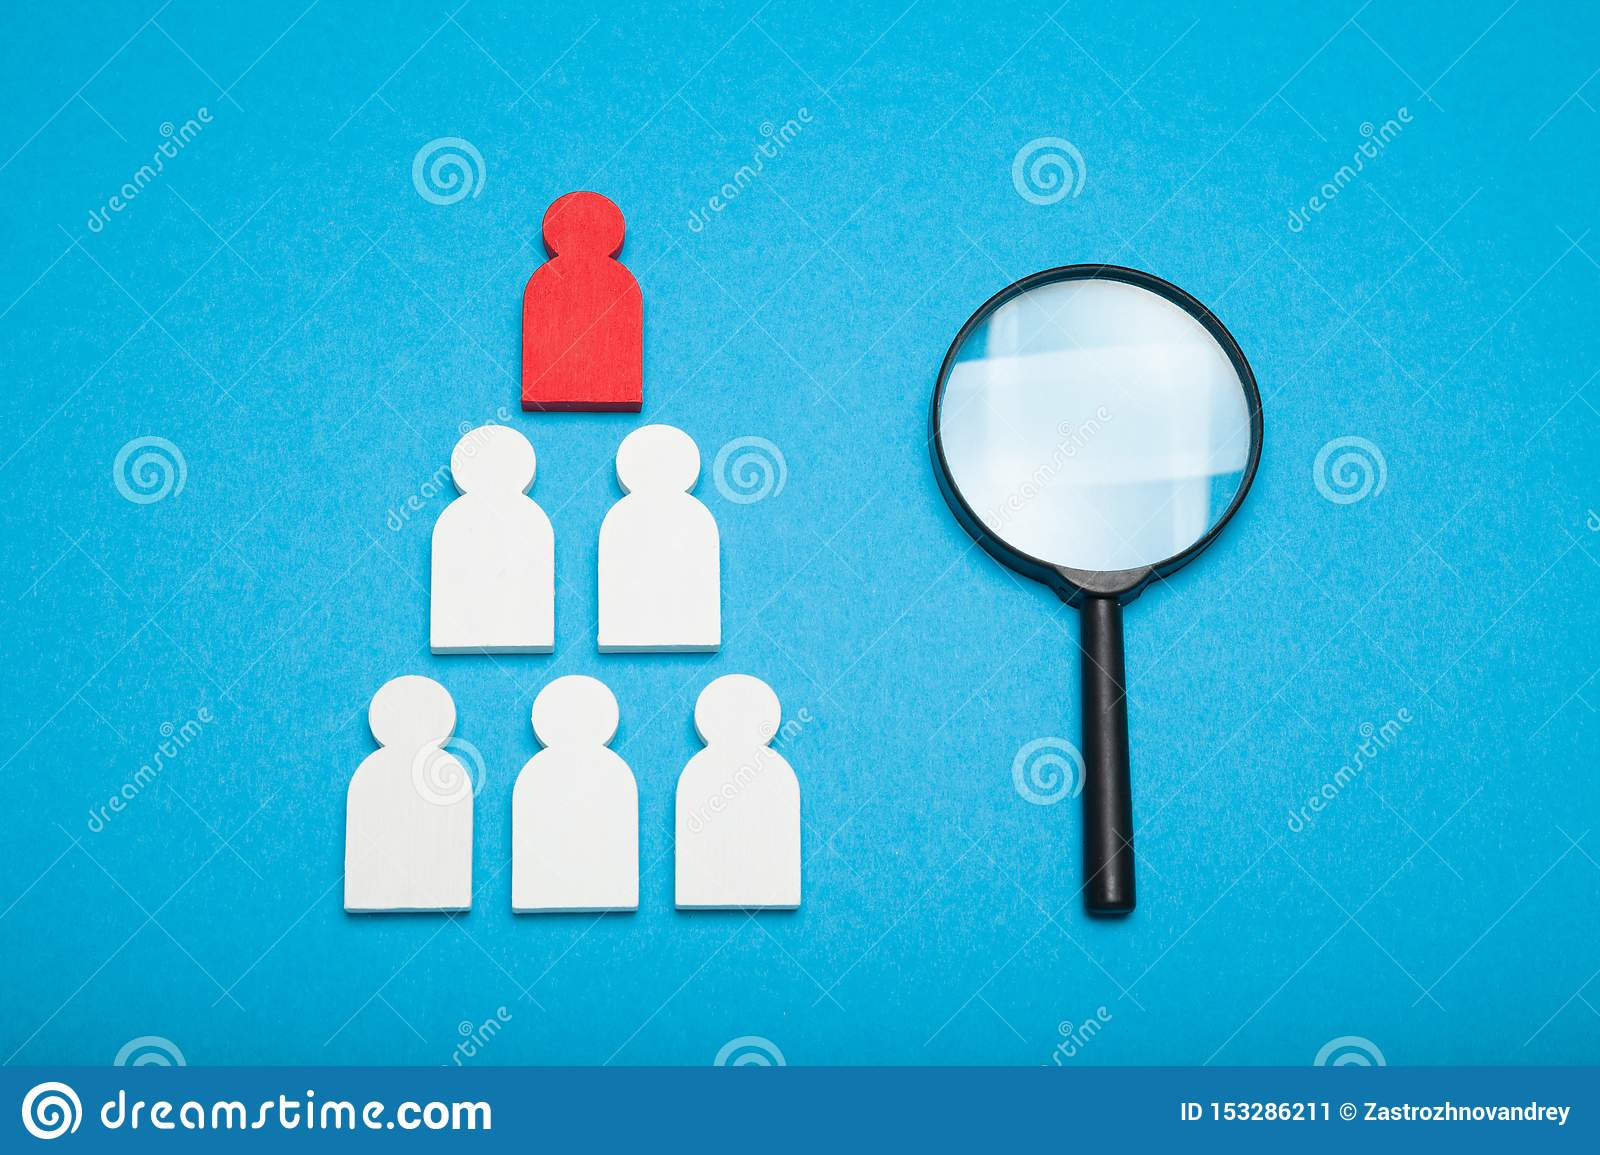 Find Manager talent resource, human manager. find employee in glass